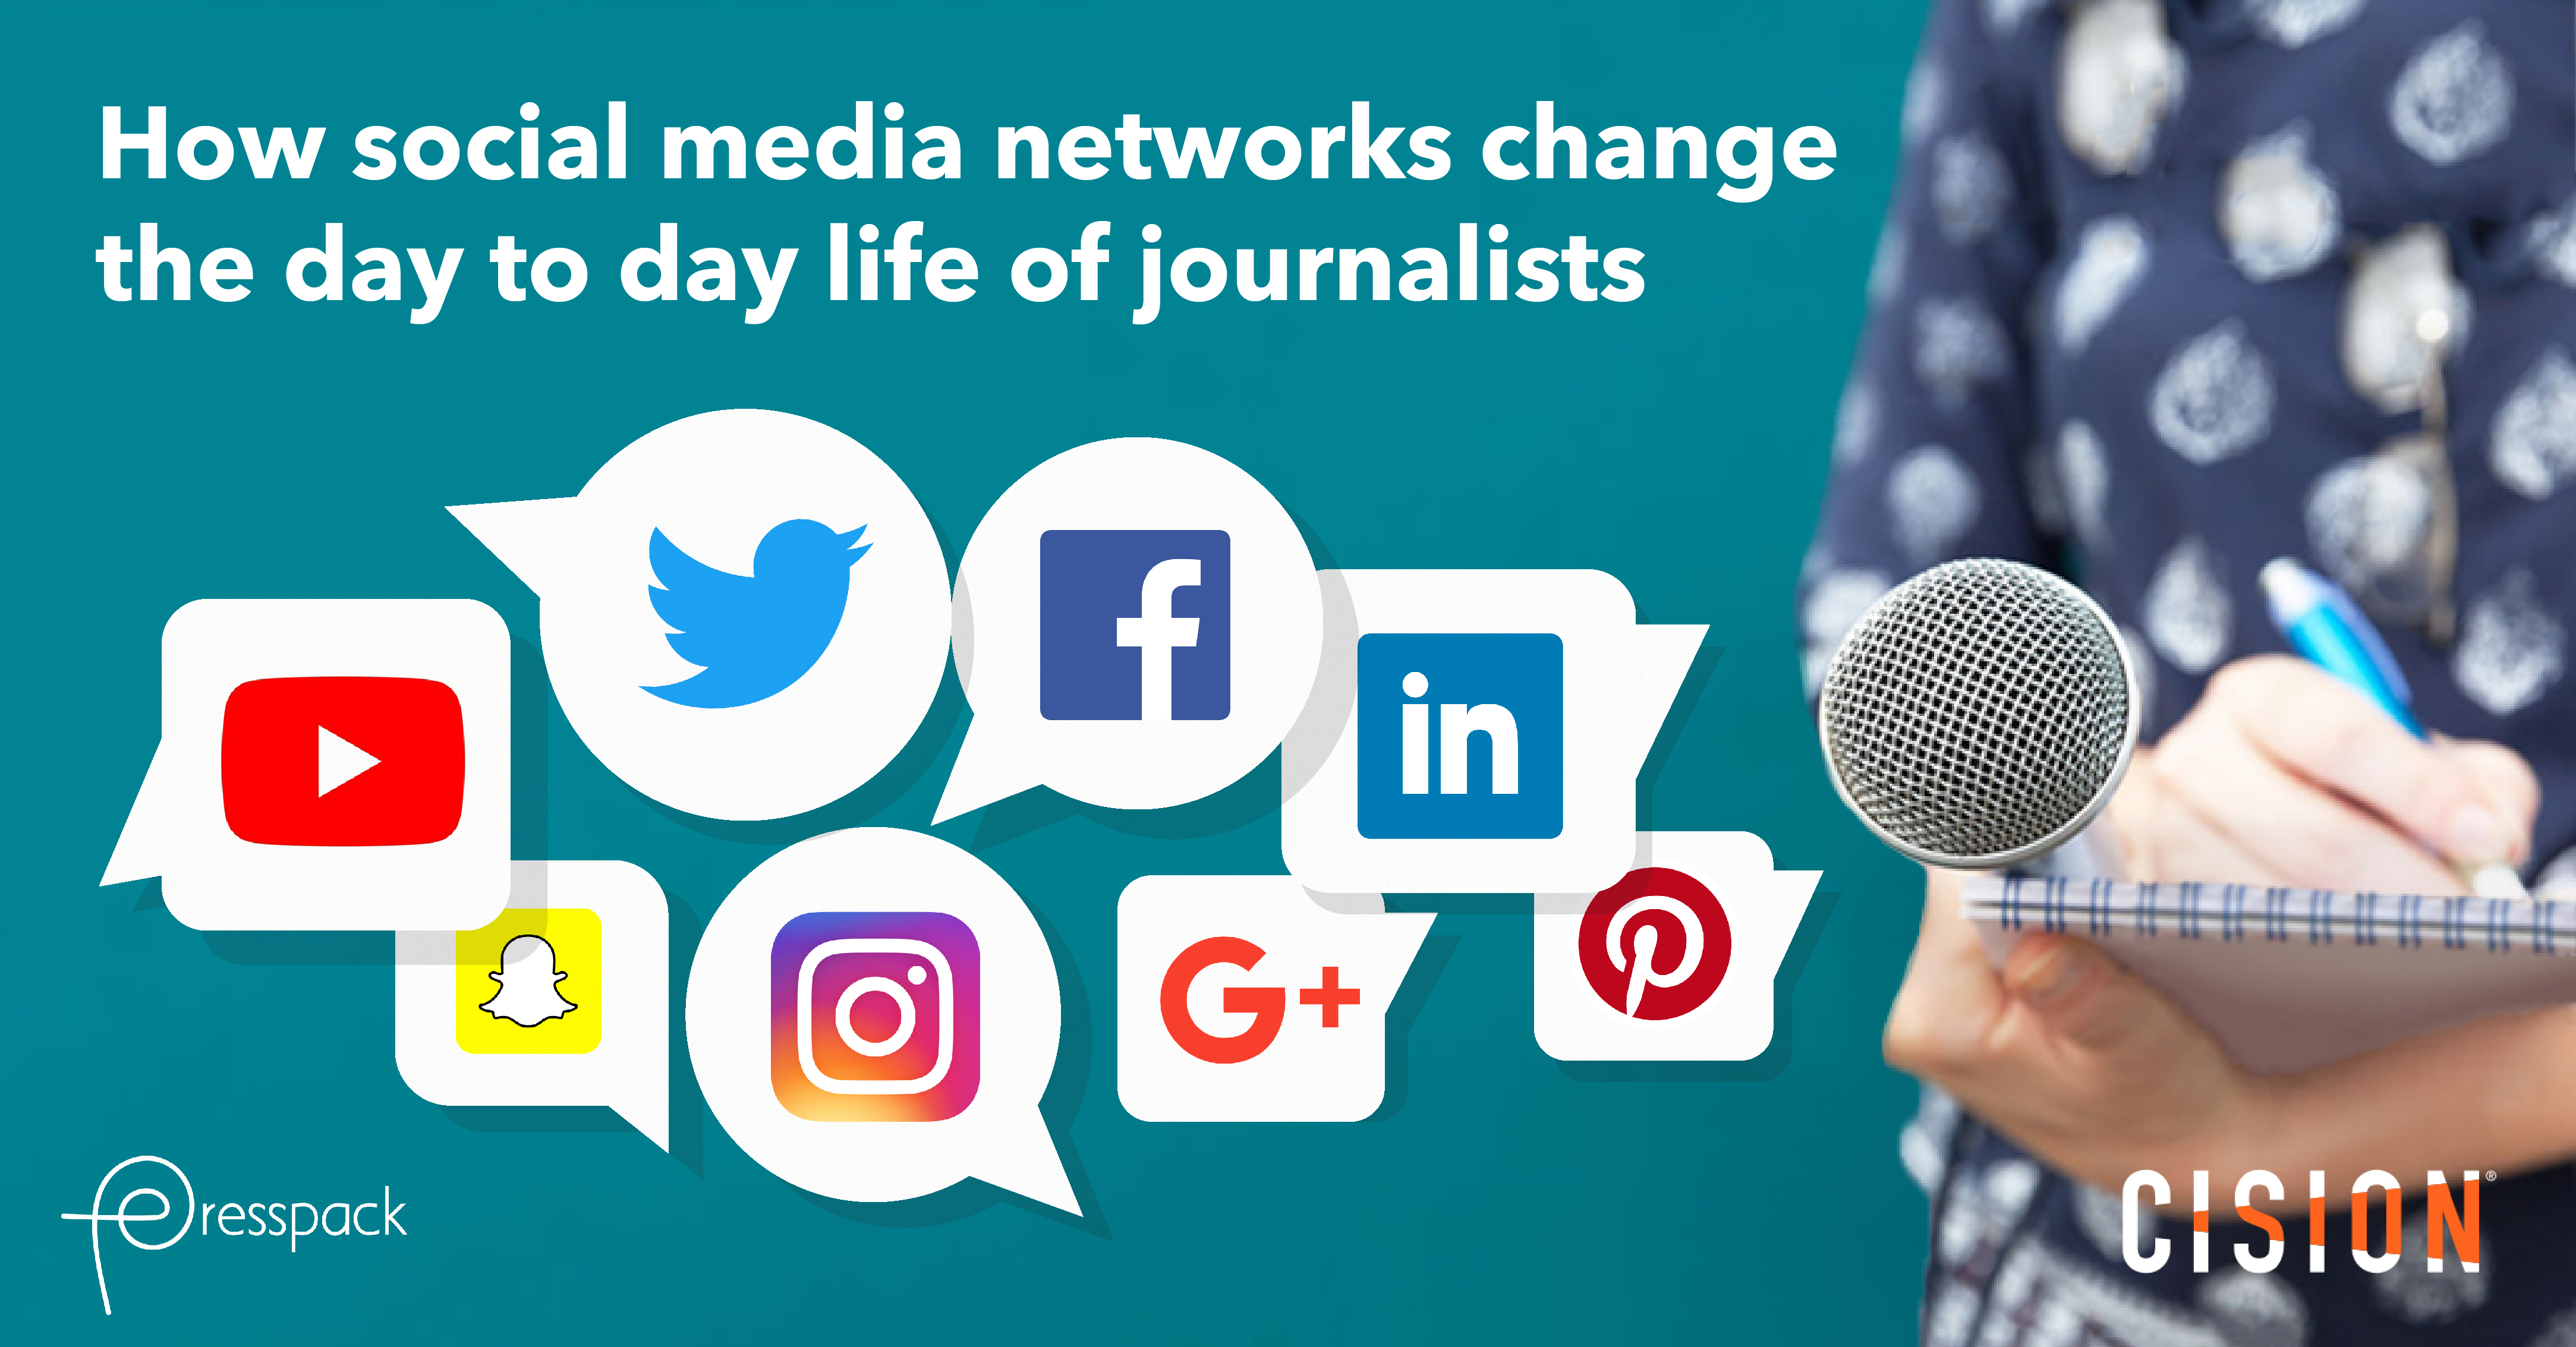 Global social journalism study - CISION